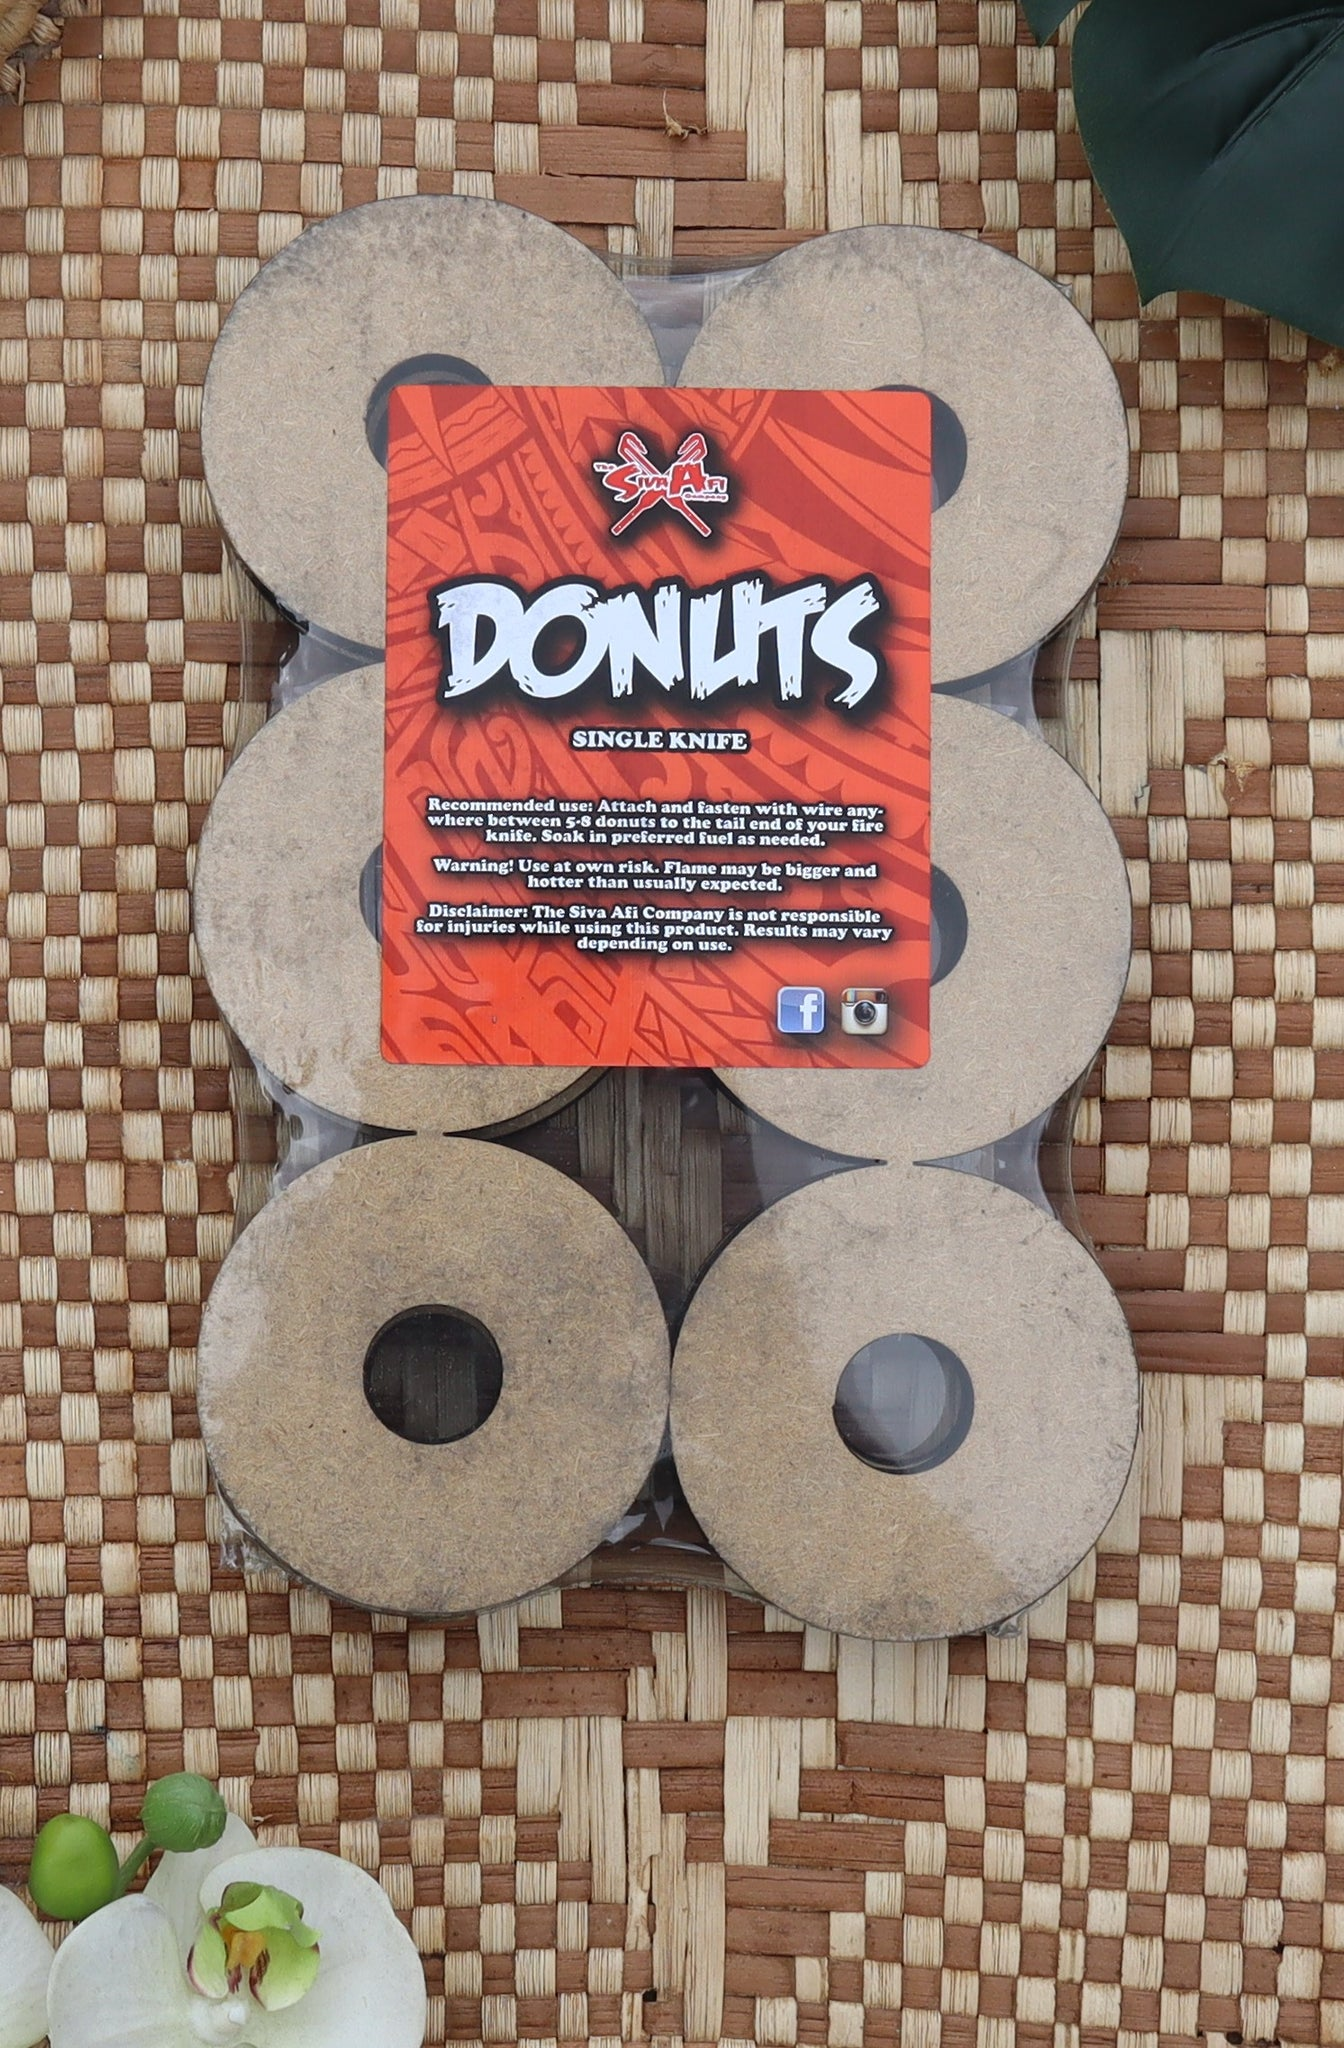 Donuts Single Knife Size - Measina Treasures of Samoa